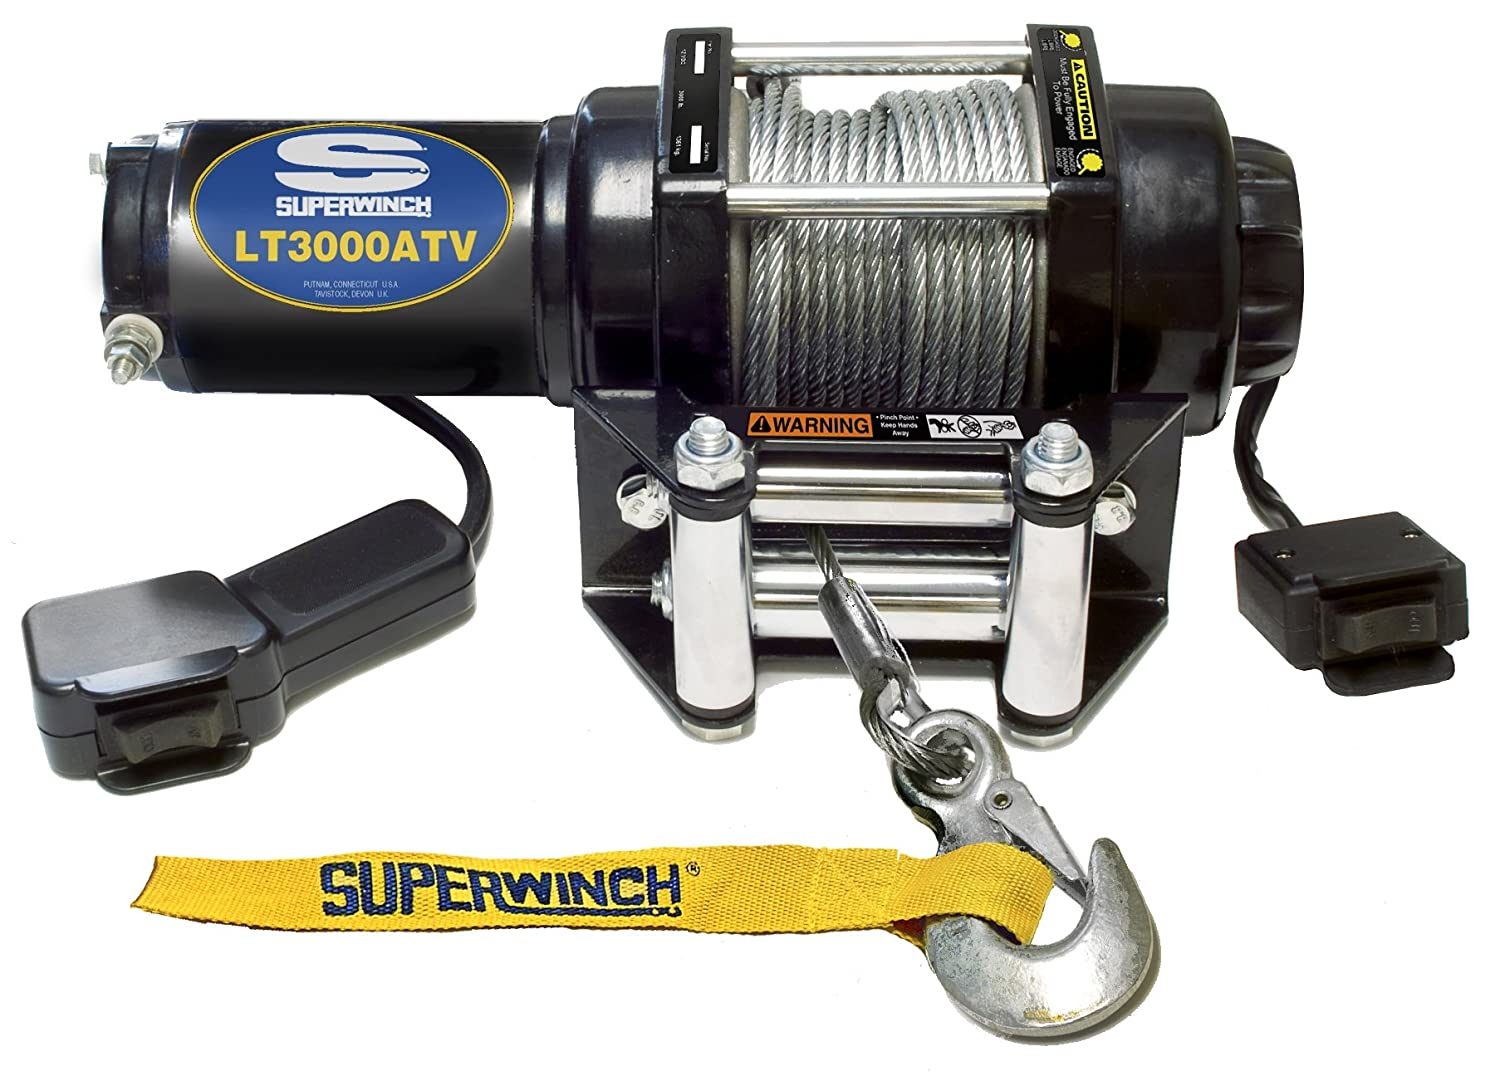 Superwinch LT3000ATV 12 VDC winch 3,000lbs/1360kg